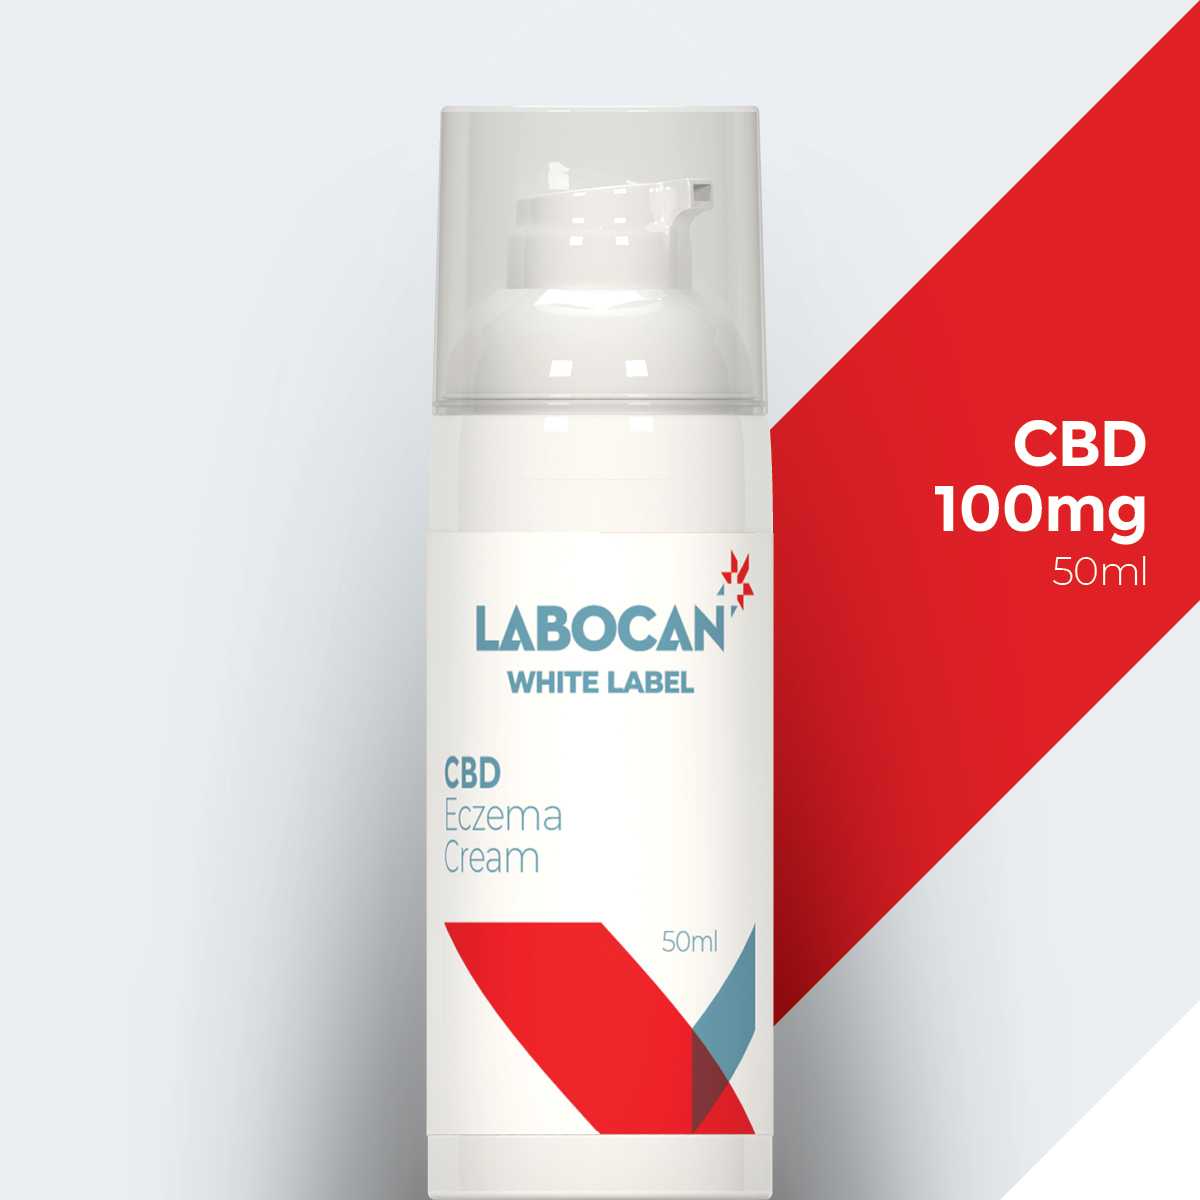 Labocan White label CBD Eczema Cream